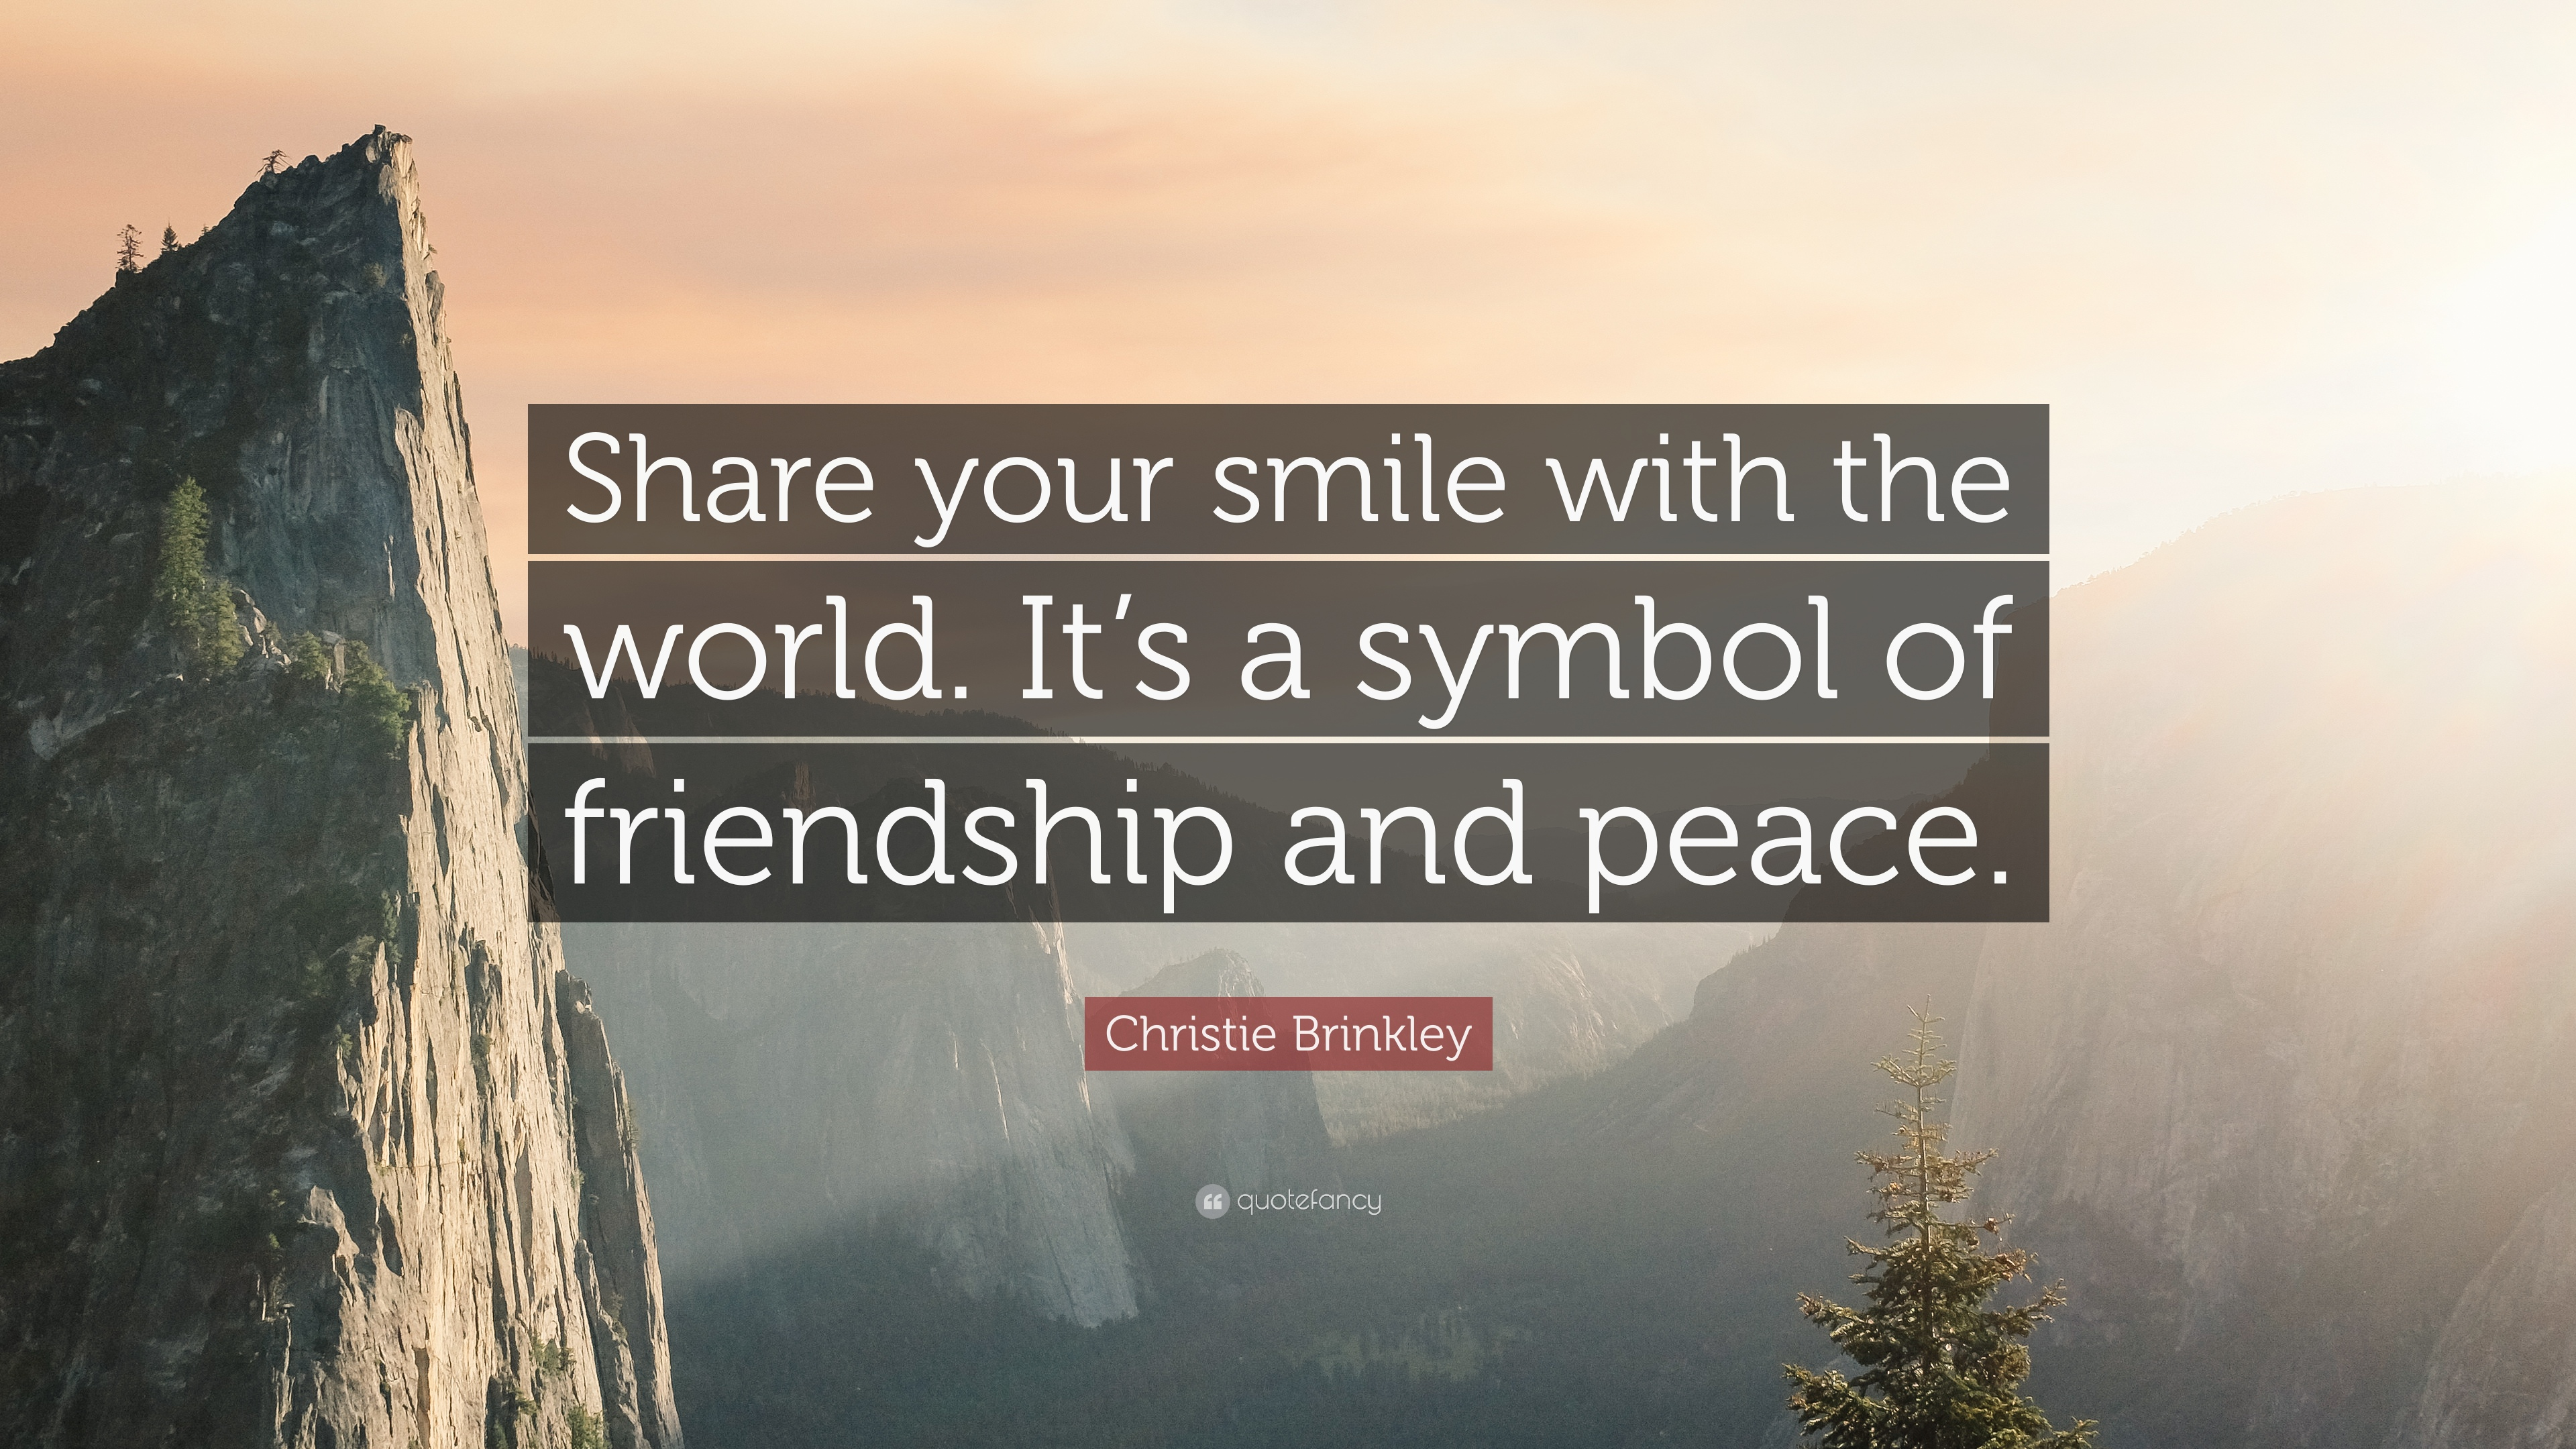 Quotes About Smile And Friendship Christie Brinkley Quotes 24 Wallpapers  Quotefancy